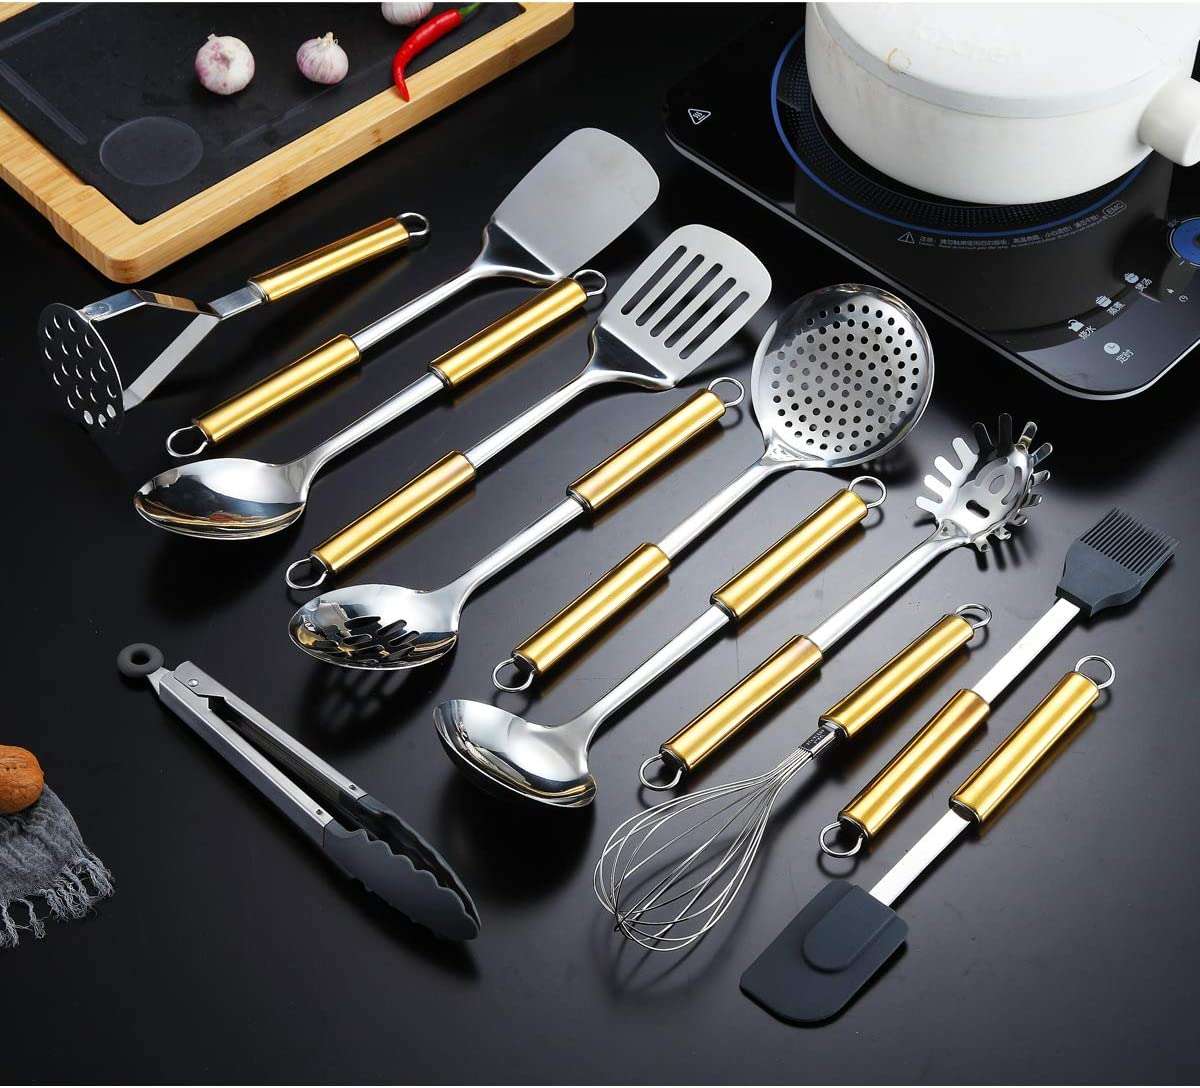 Potato Masher 12pcs Kyraton Stainless Steel Cooking Utensil Sets 12 Pieces Spatulas ect. Skimmer Gold Handle Kitchen Utensil Set Kitchen Tool Set Include Cooking Spoon Ladle